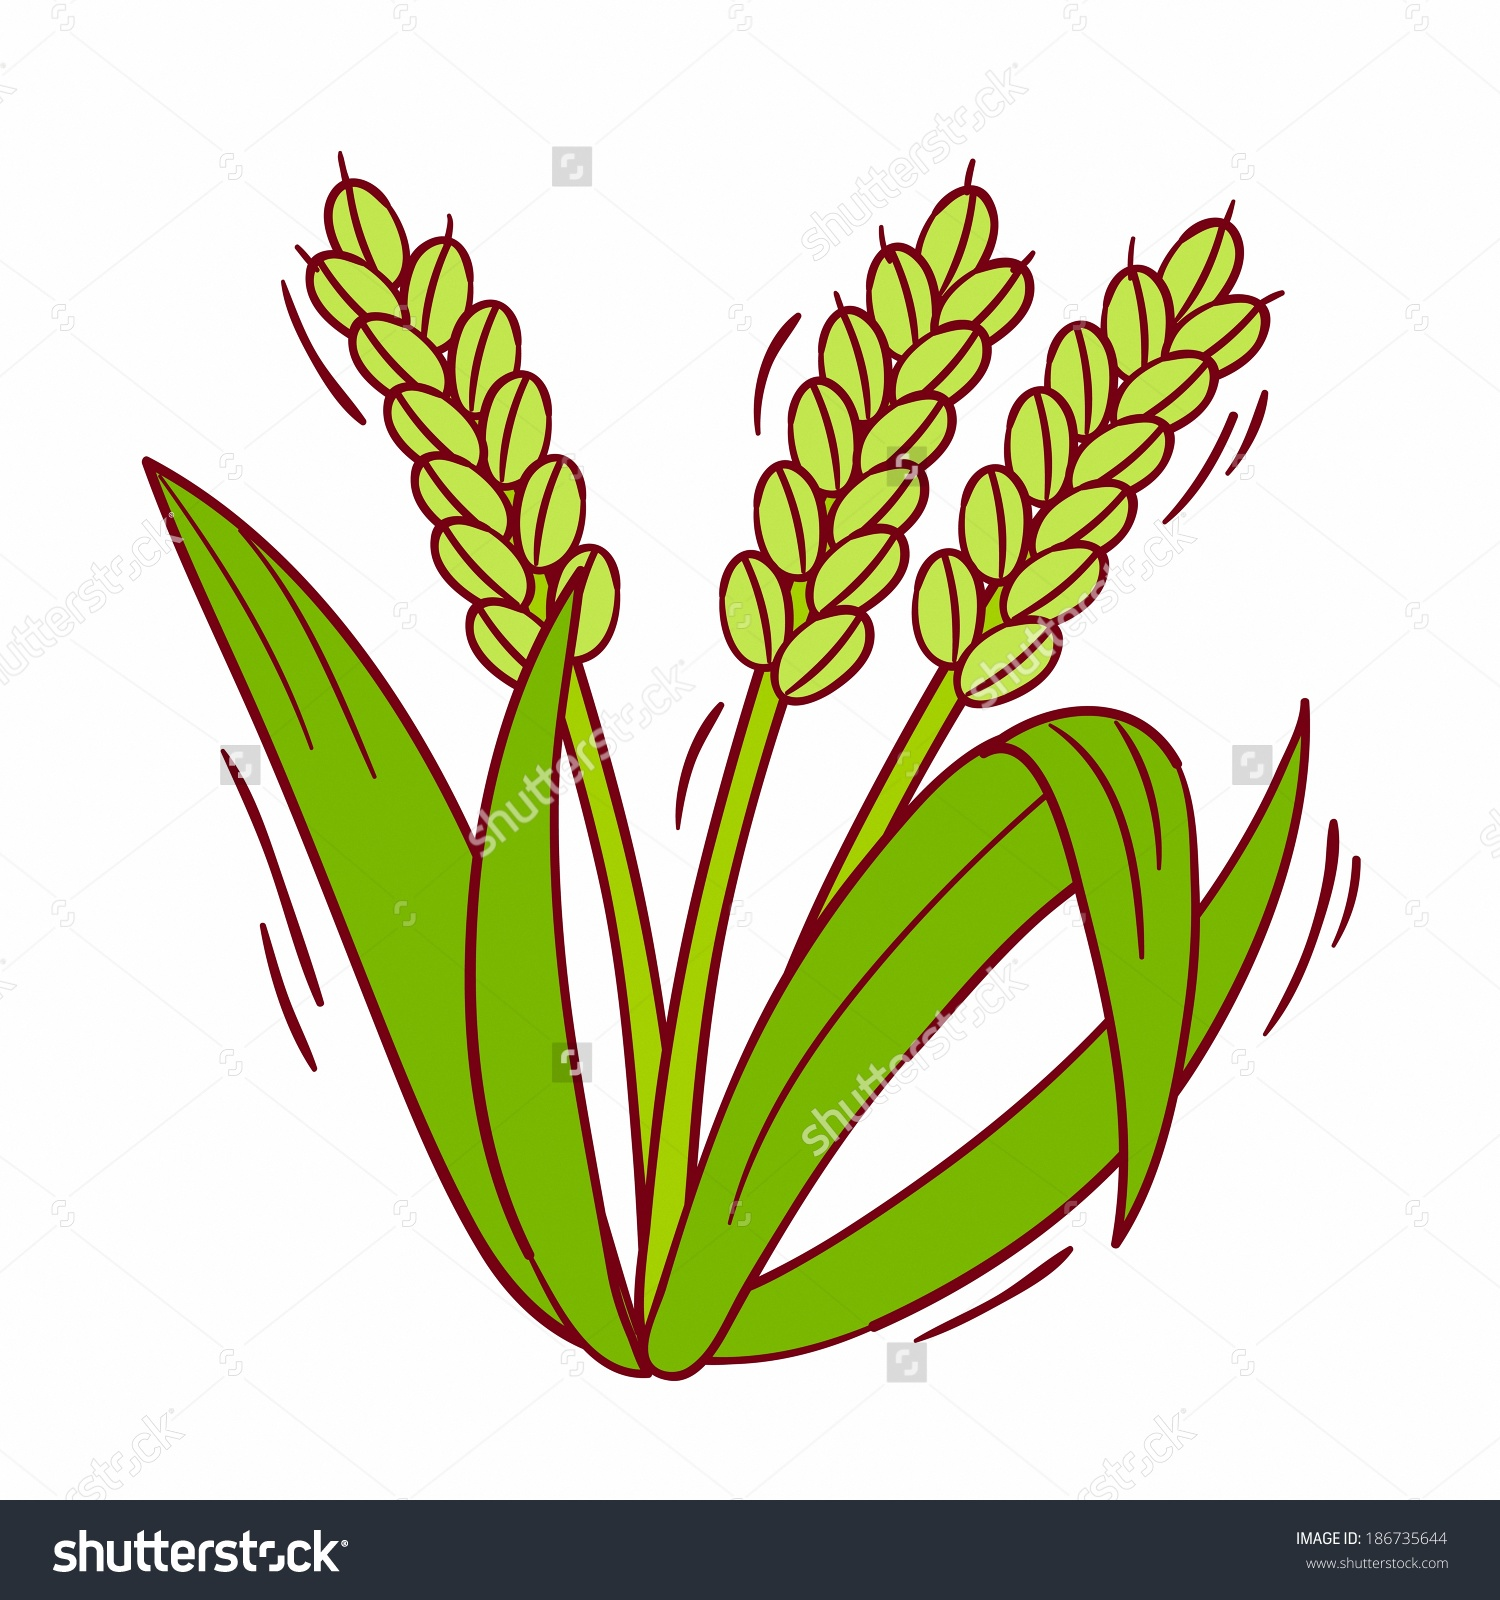 Illustration Rice Plant Stock Illustration 186735644.